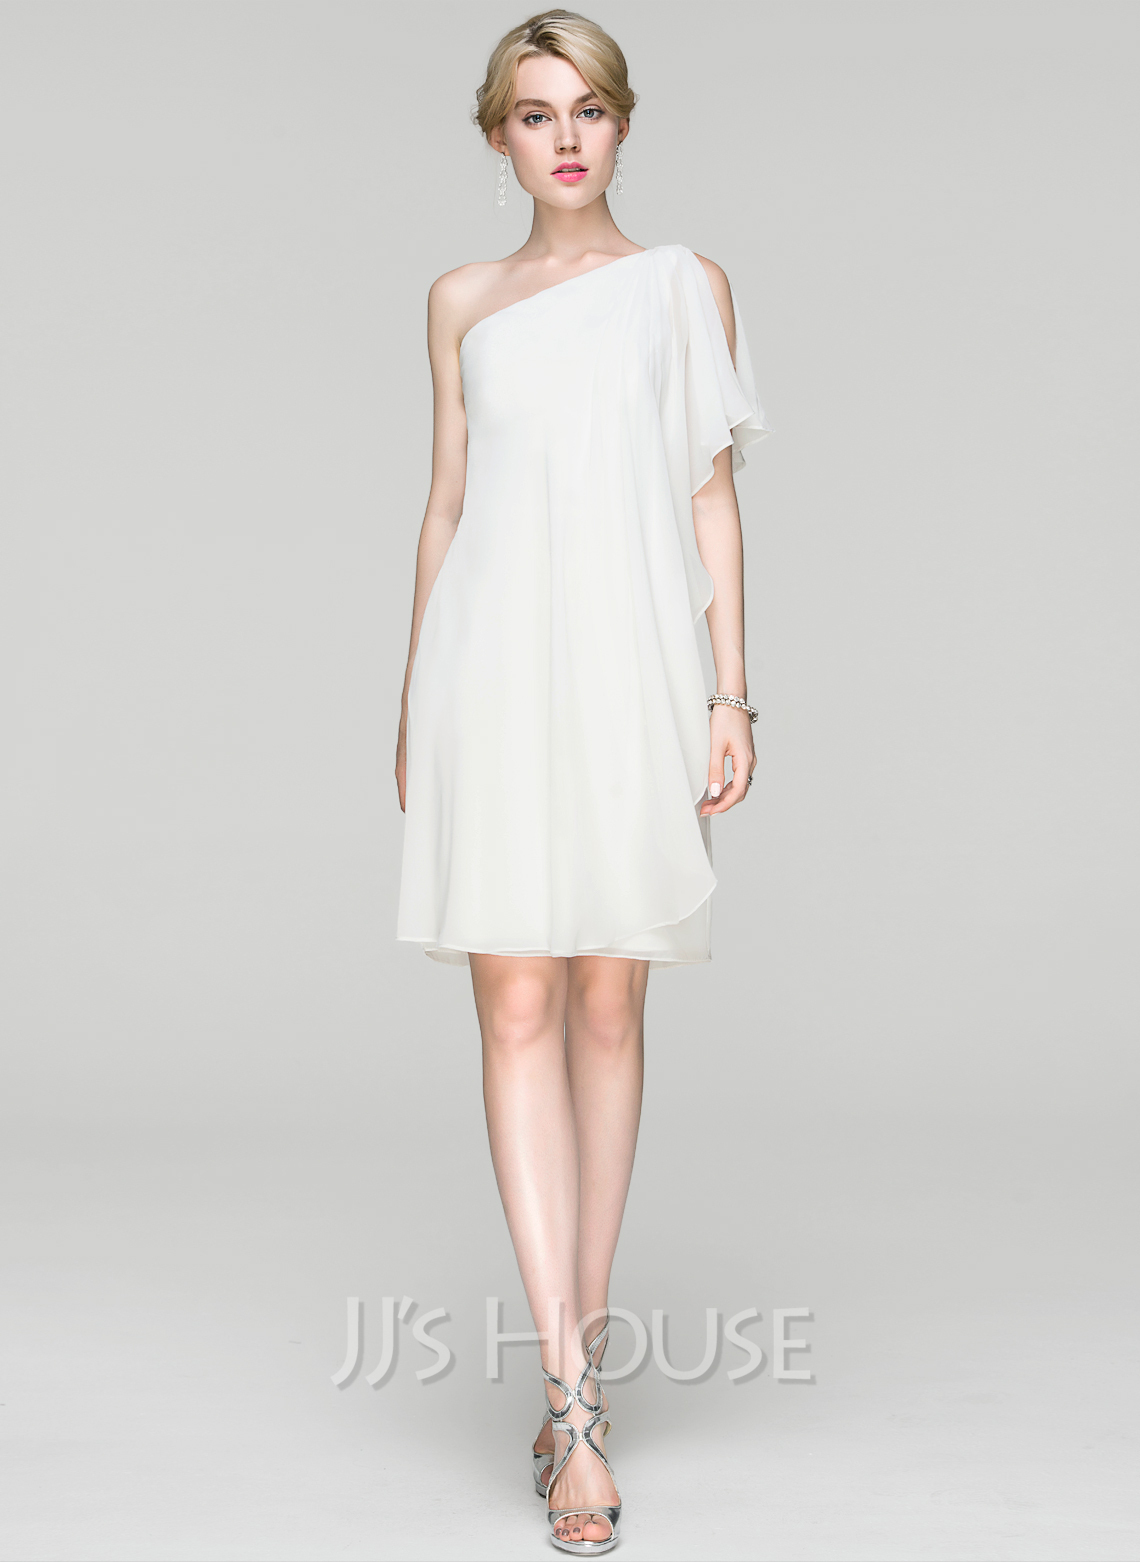 b7c87e0a Sheath/Column One-Shoulder Knee-Length Chiffon Cocktail Dress With Ruffle.  Loading zoom